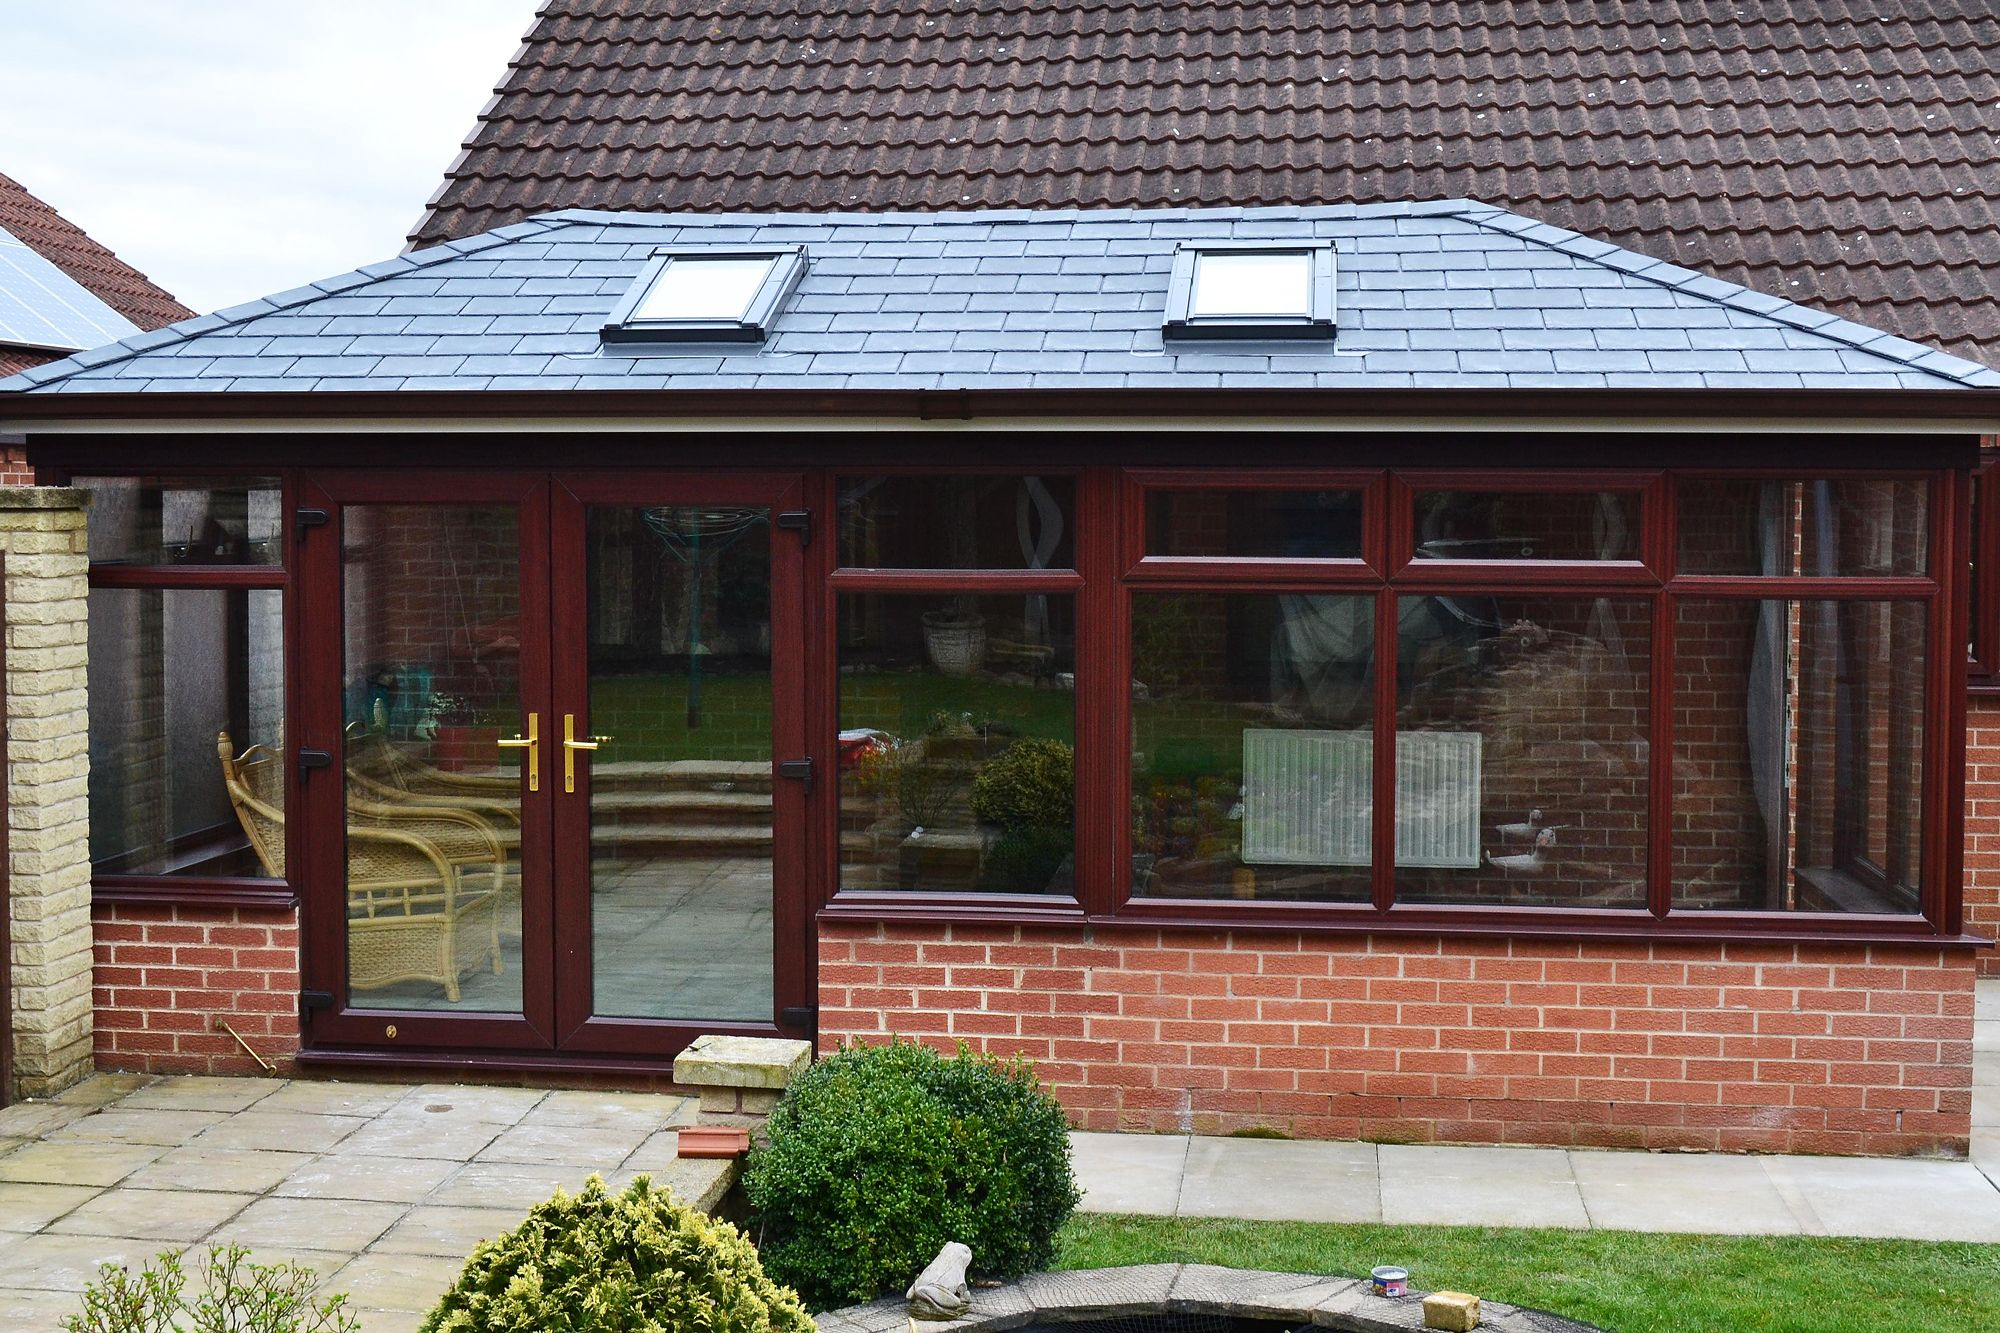 Large Supalite Tiled Conservatory Roof With Two Dekea Roof Vents Similar To Velux Windows With Luxurio Conservatory Roof Tiled Conservatory Roof Conservatory